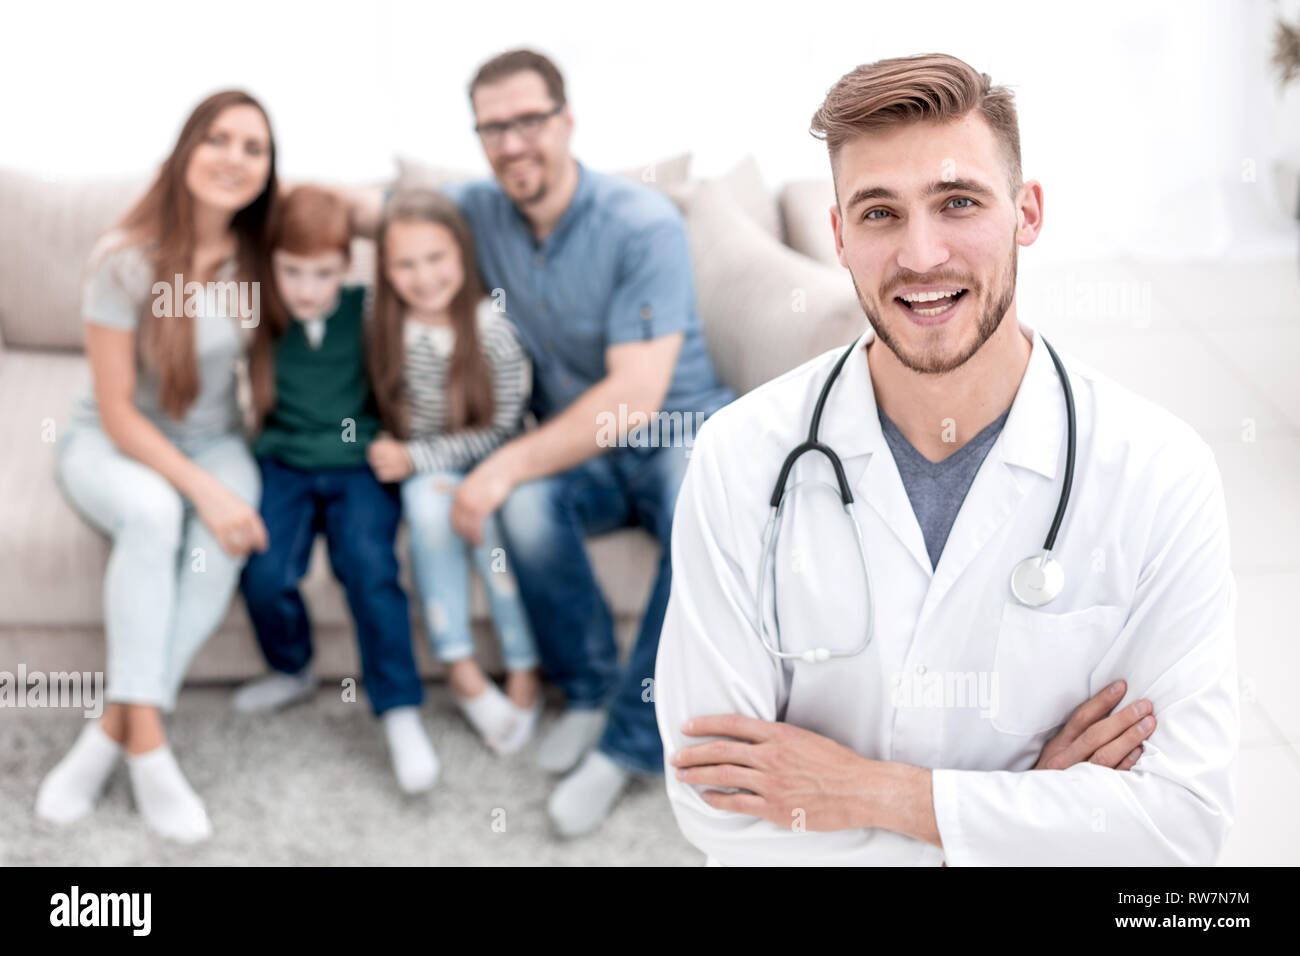 family doctor visiting his patients - Stock Image